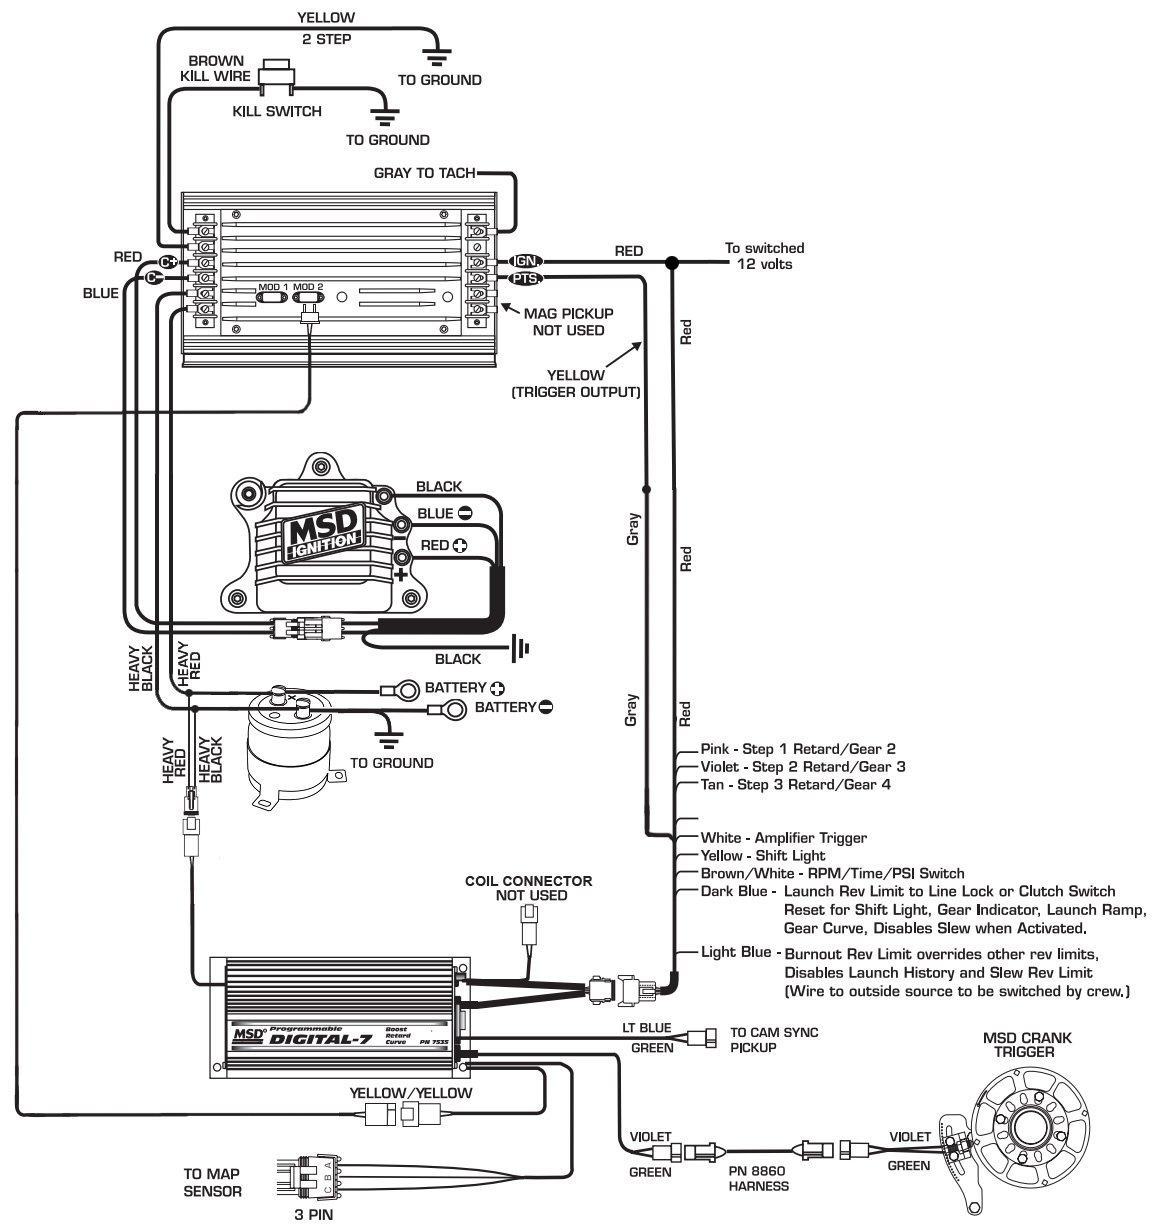 msd dis 2 wiring diagram wiring diagram and schematic design msd dis 4 to ford 6l modular harness zero g autronic to 4g63 wiring